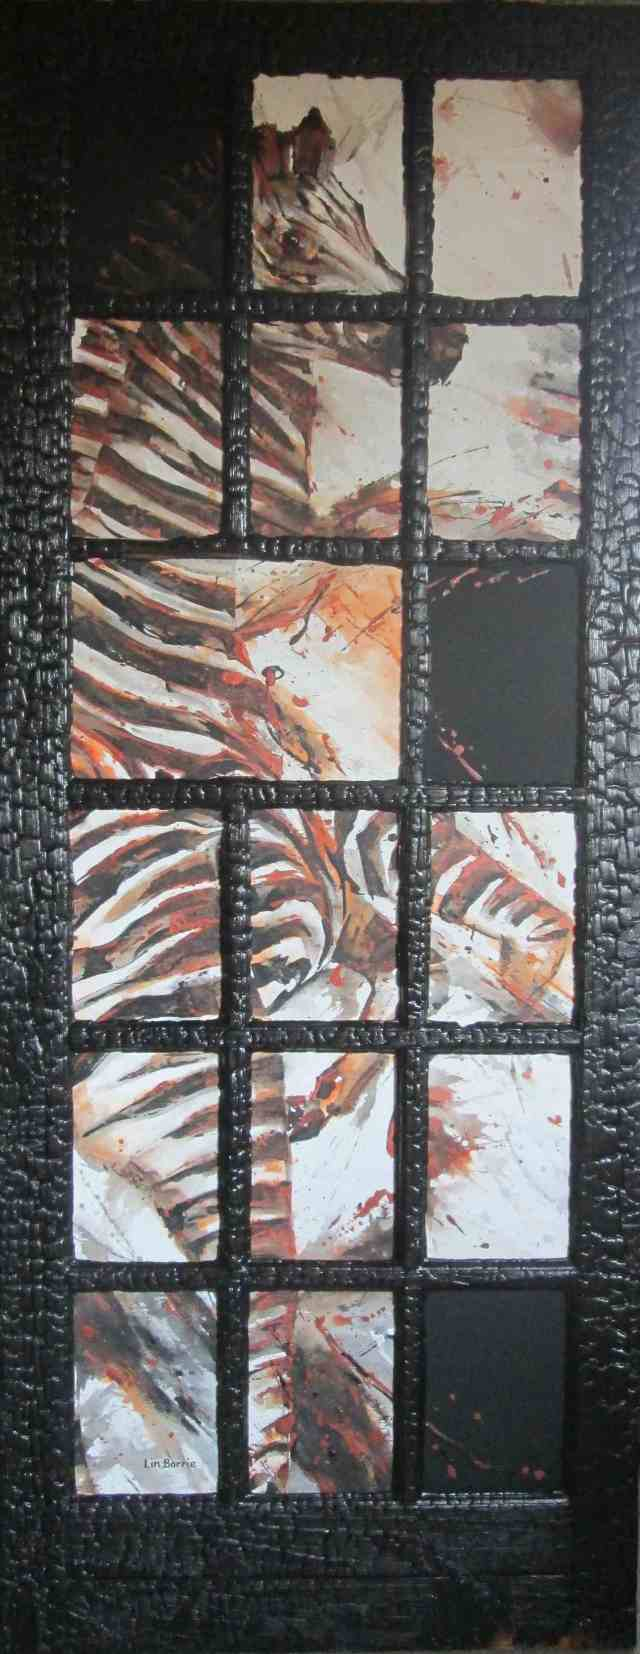 zebra-portal-acrylic-and-wood-200-x-100-cm-lo-res